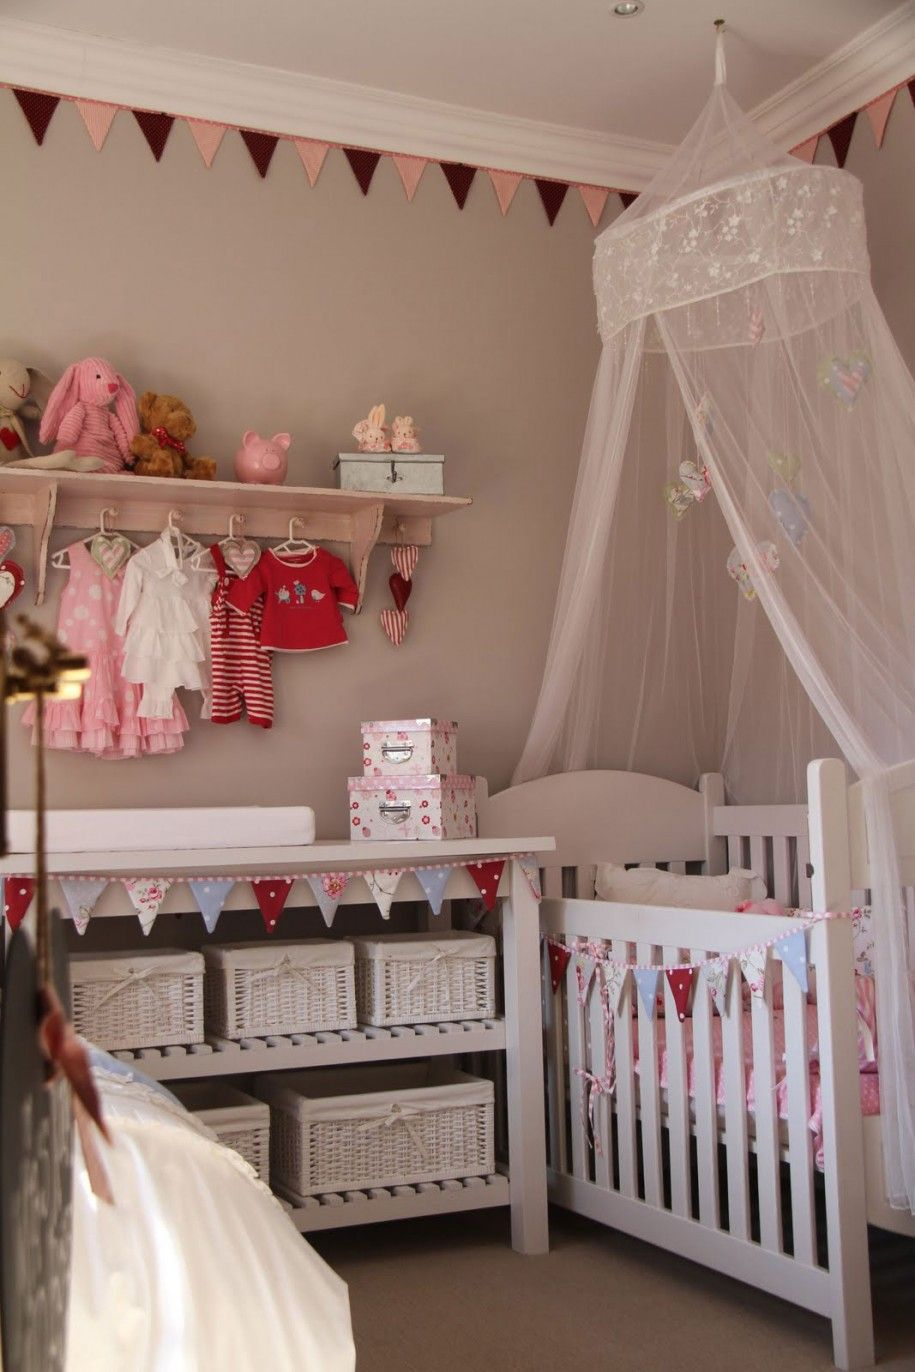 Make Your Babies Sleep Well By Building Soothing Baby Room Ideas: Stunning  And Charming Baby